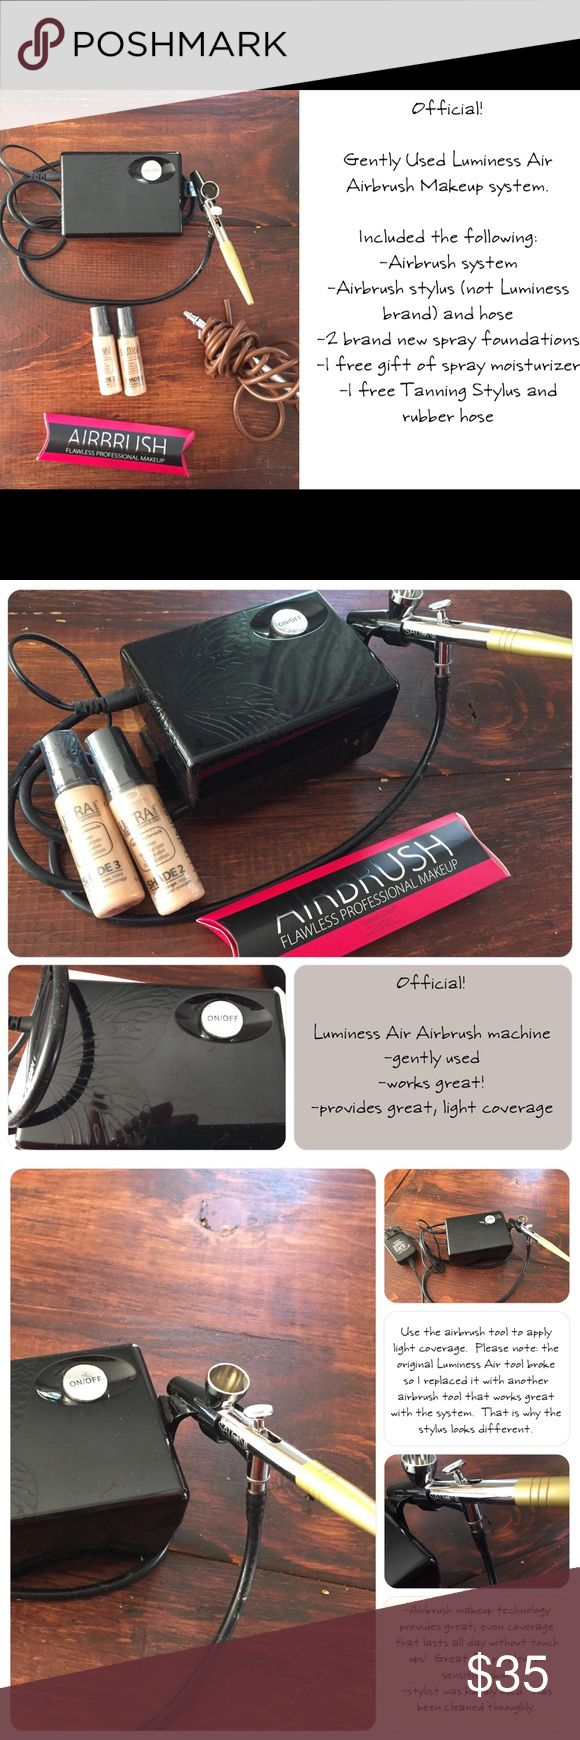 Luminess Air Makeup System Airbrush your Foundation with this slightly used Luminess Air Airbrush system.  It provides flawless coverage and feels like Air.  Easy to use and is blend-able.  Great for problematic skin without looking cake-y!  Great for oily skin as well! Luminess Air Makeup Brushes & Tools